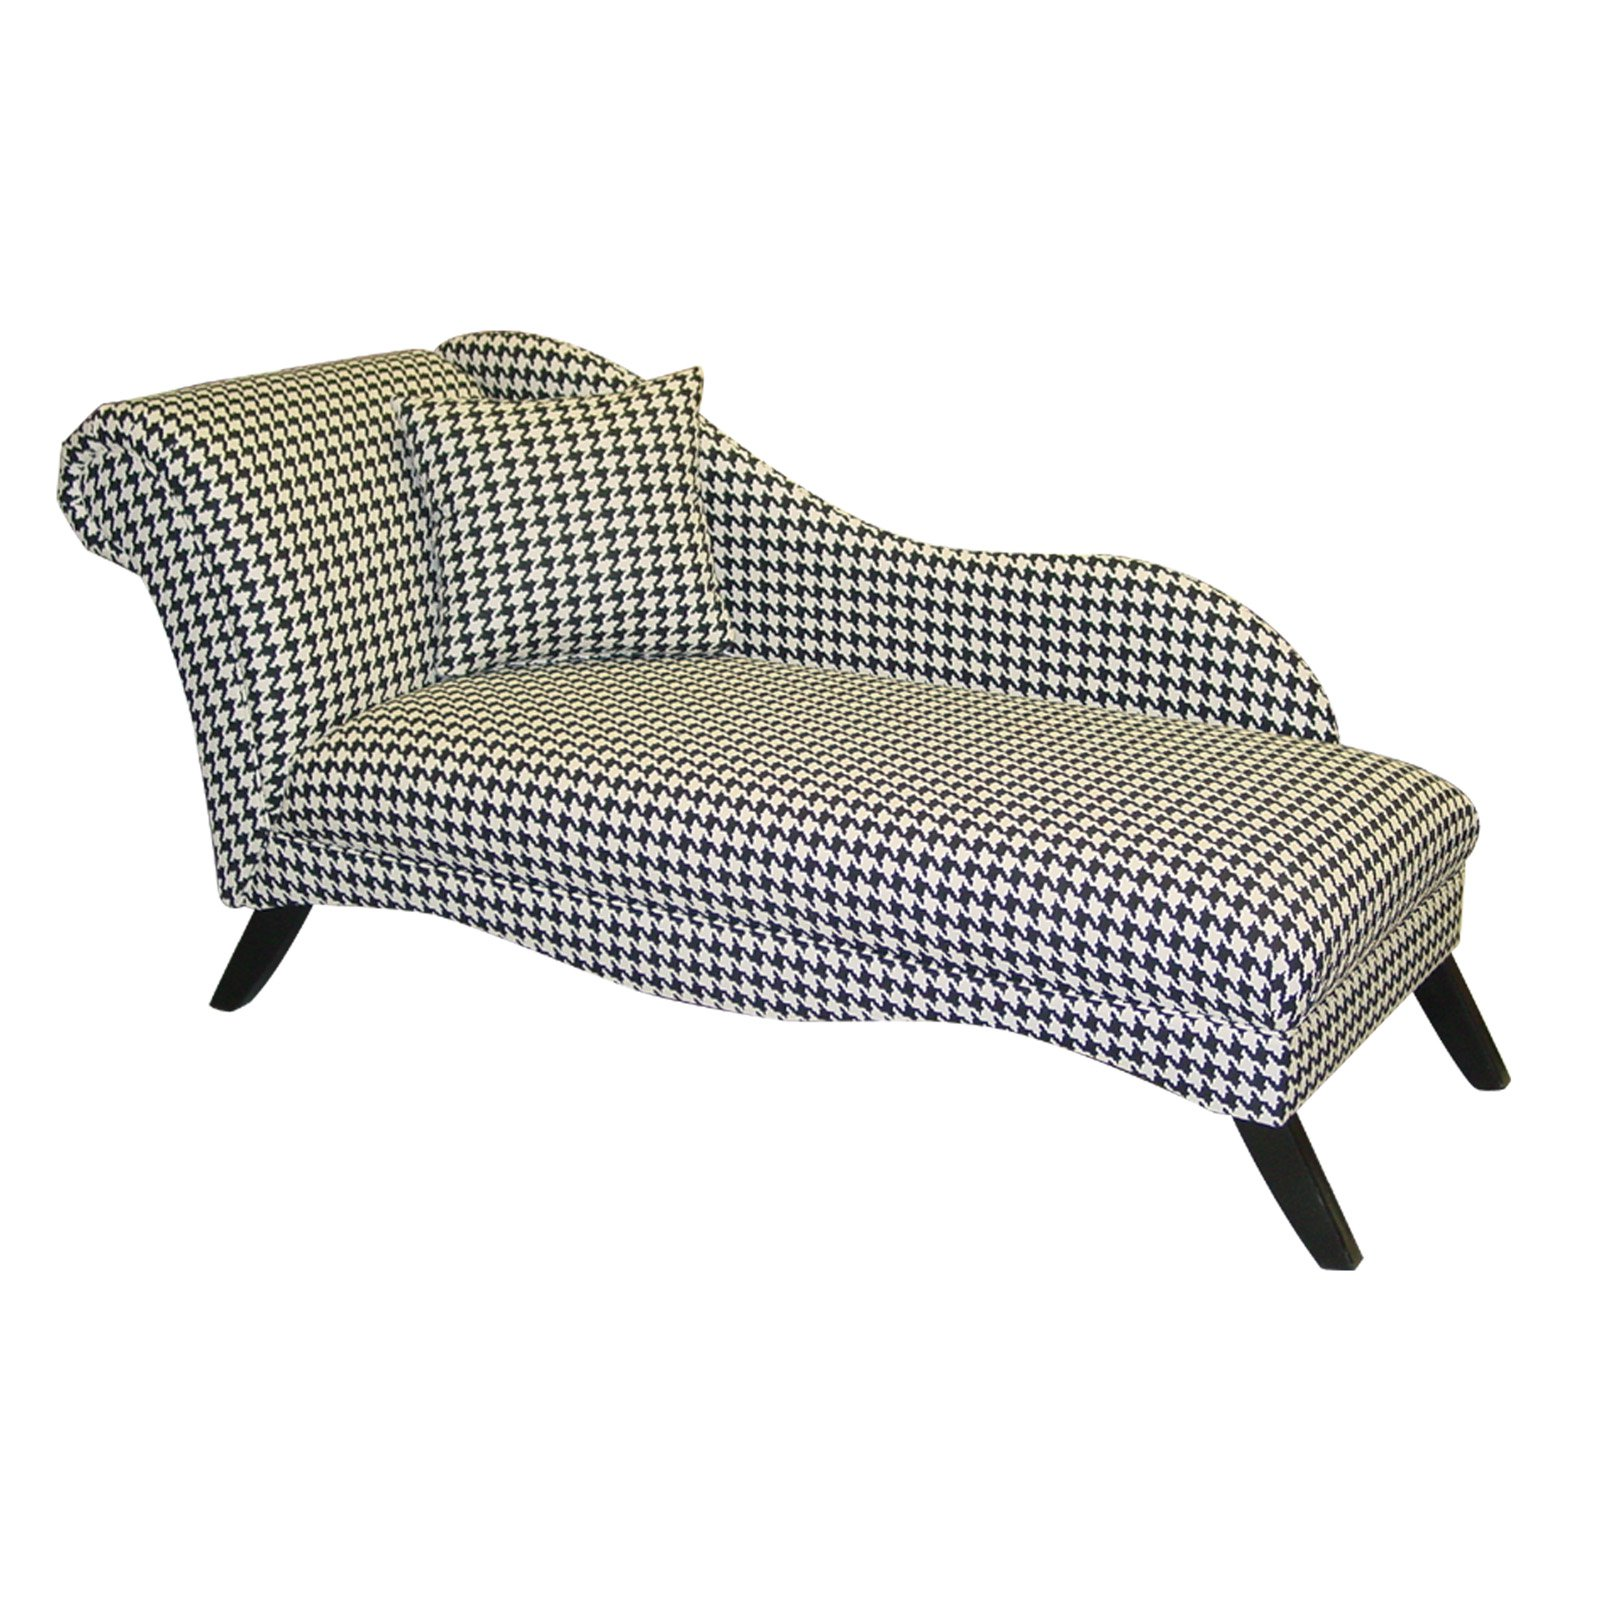 Cosmo Chaise Lounge - Hollywood Glam - Houndstooth